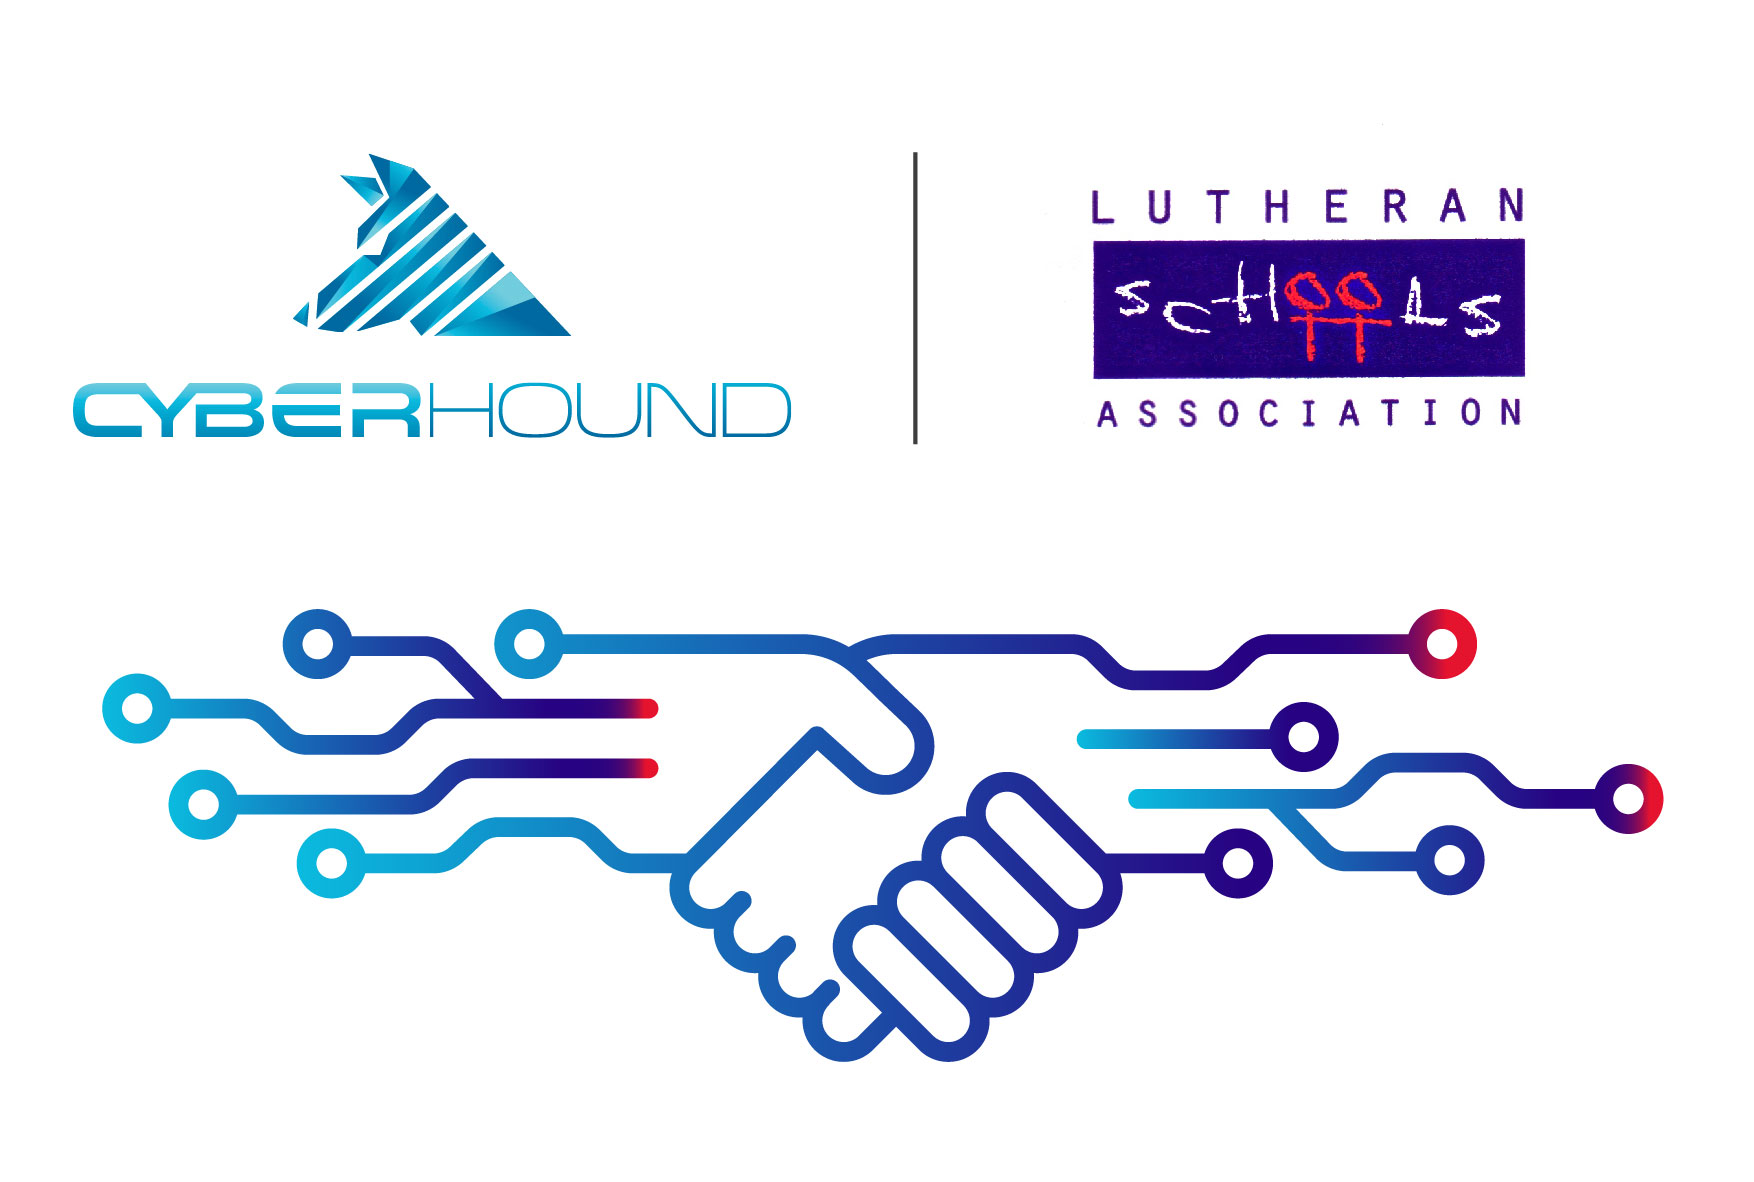 CH and LSA partnership